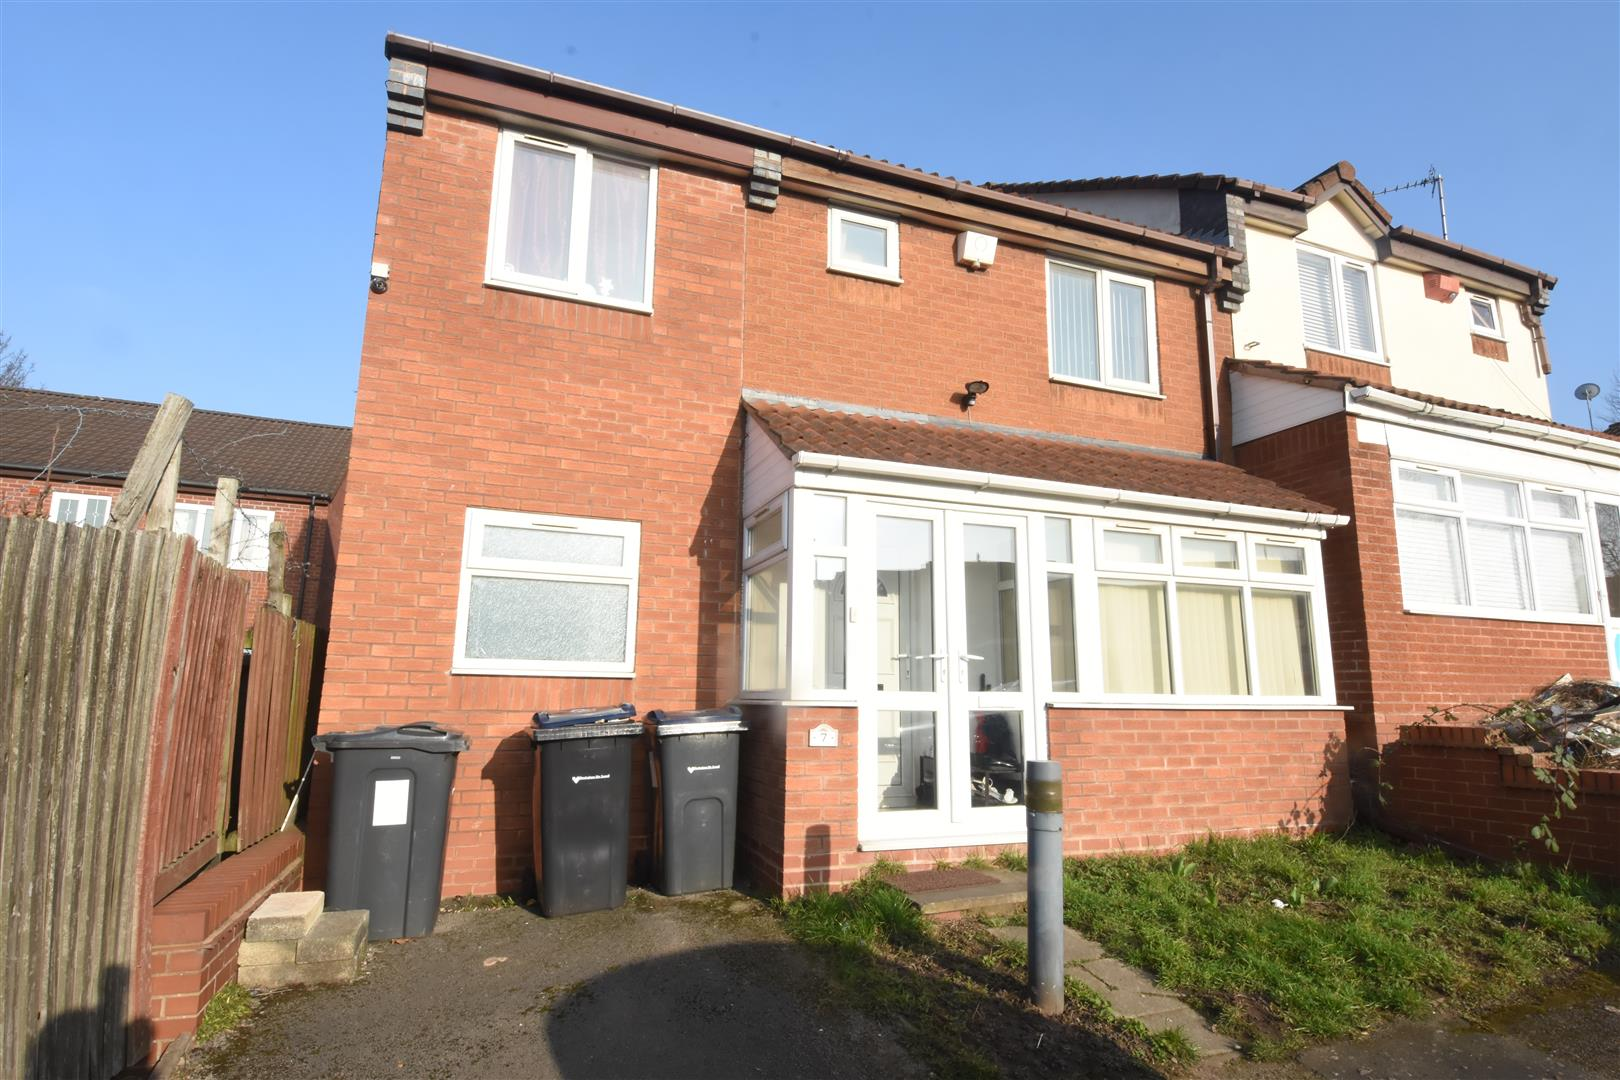 4 bed house for sale in Duddeston Drive, Birmingham - Property Image 1